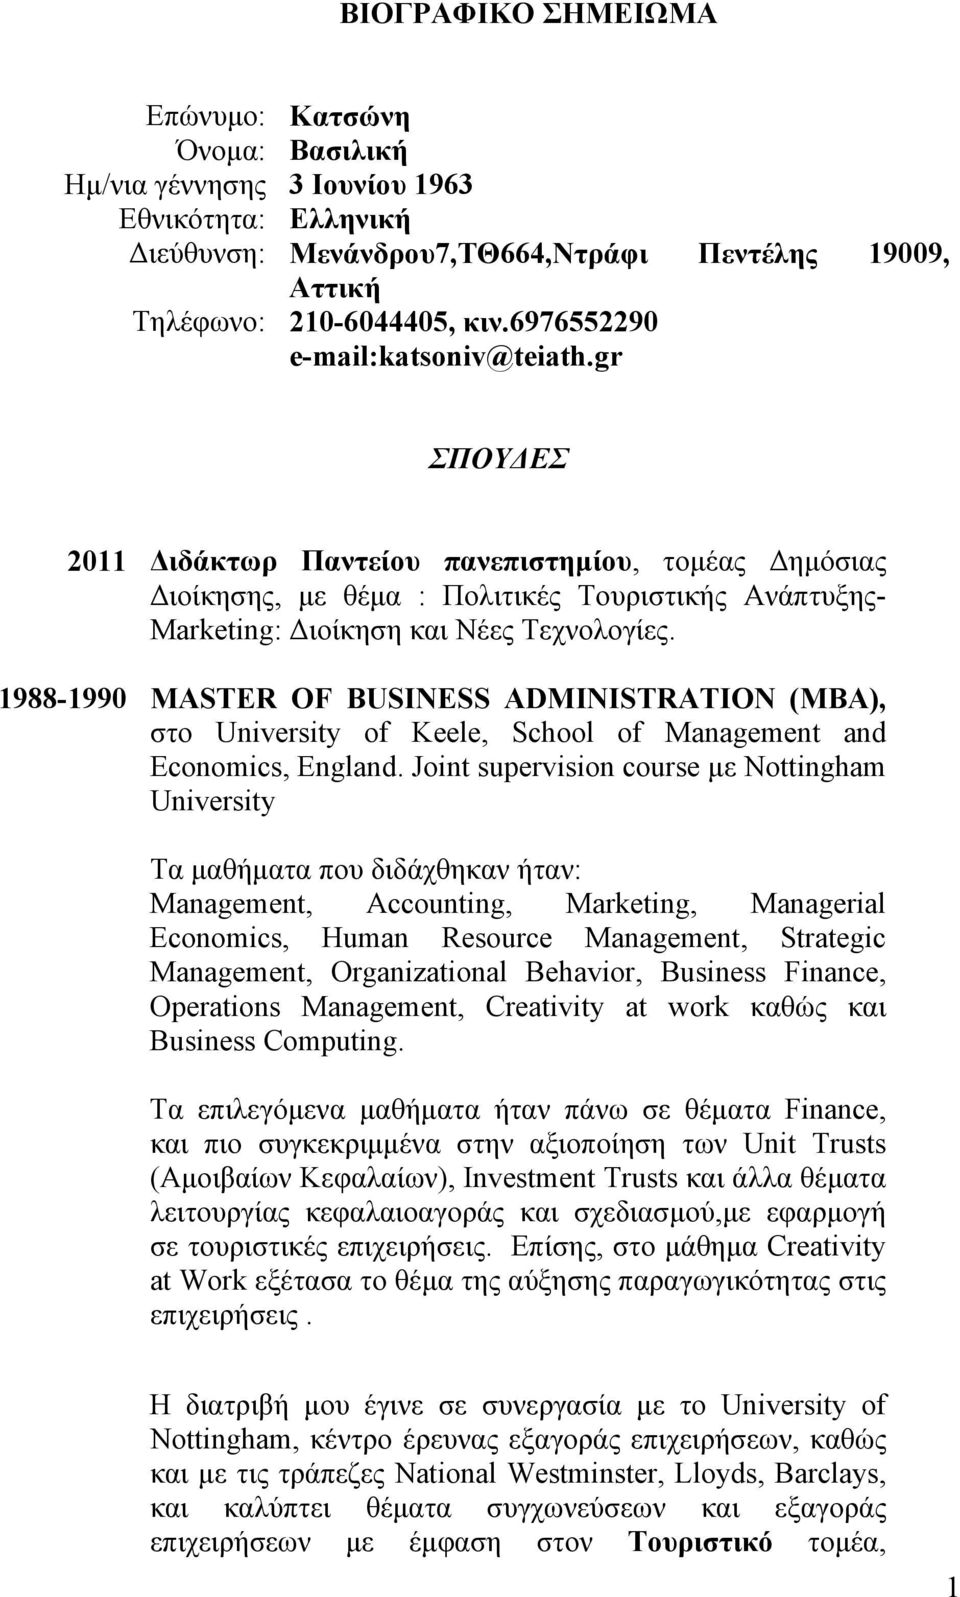 1988-1990 MASTER OF BUSINESS ADMINISTRATION (MBA), στο University of Keele, School of Management and Economics, England.